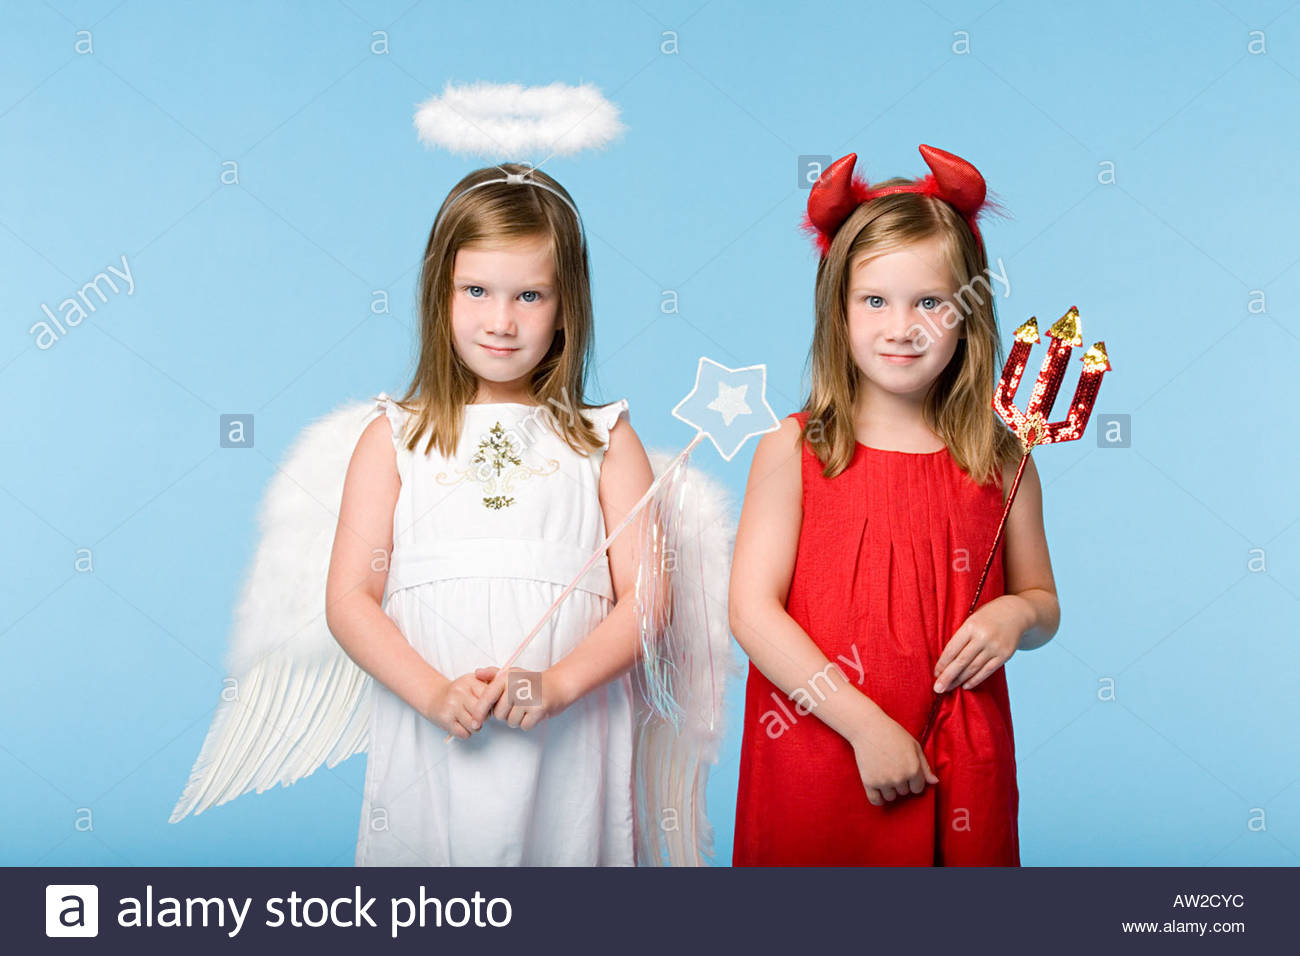 Twin girls dressed as an angel and devil - Stock Image